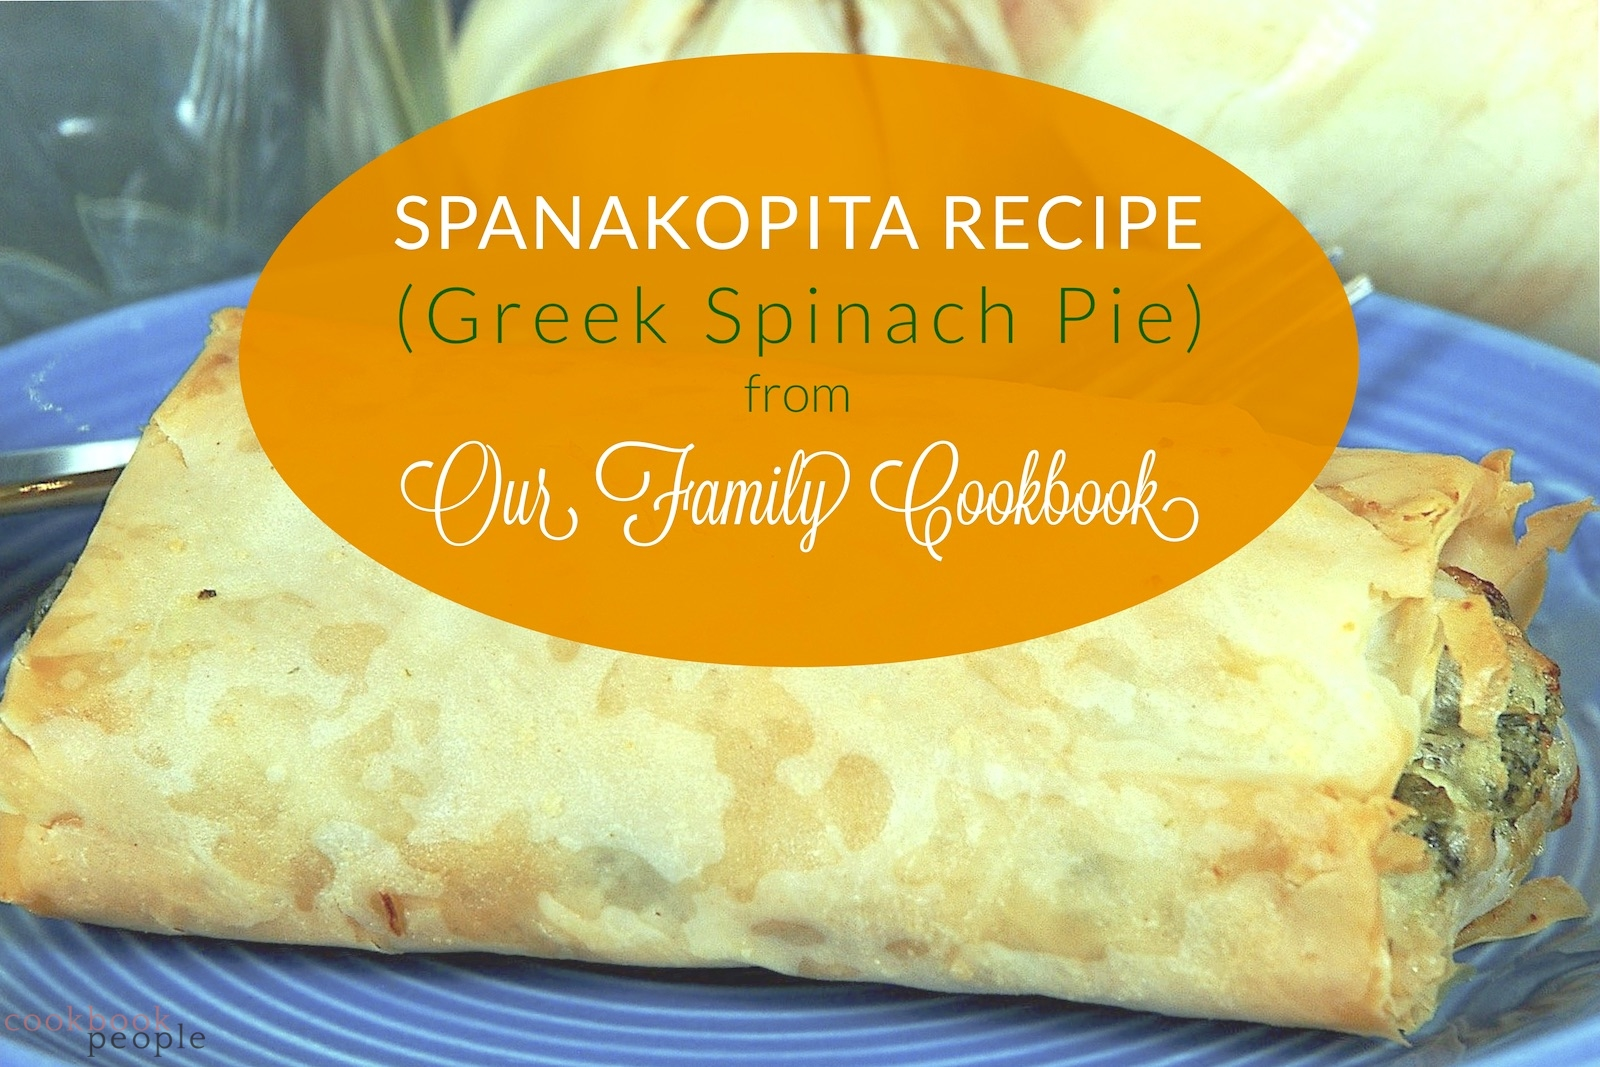 Spanakopita greek spinach filo parcel with title: Spinakopita (Greek Spinach Pie) from Our Family Cookbook